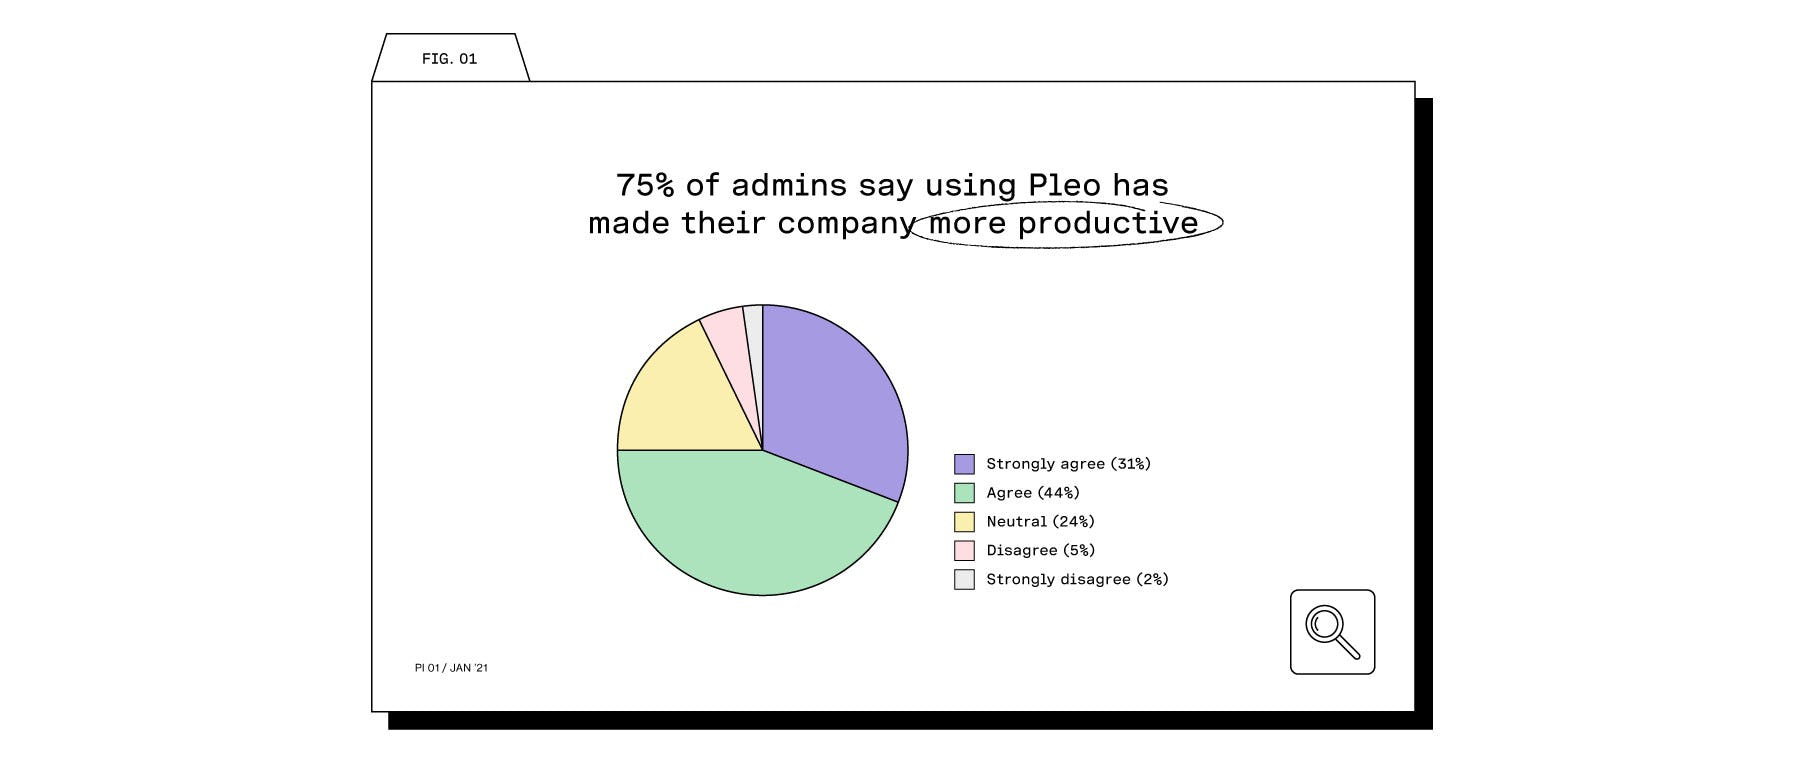 75% of admins are more productive using Pleo